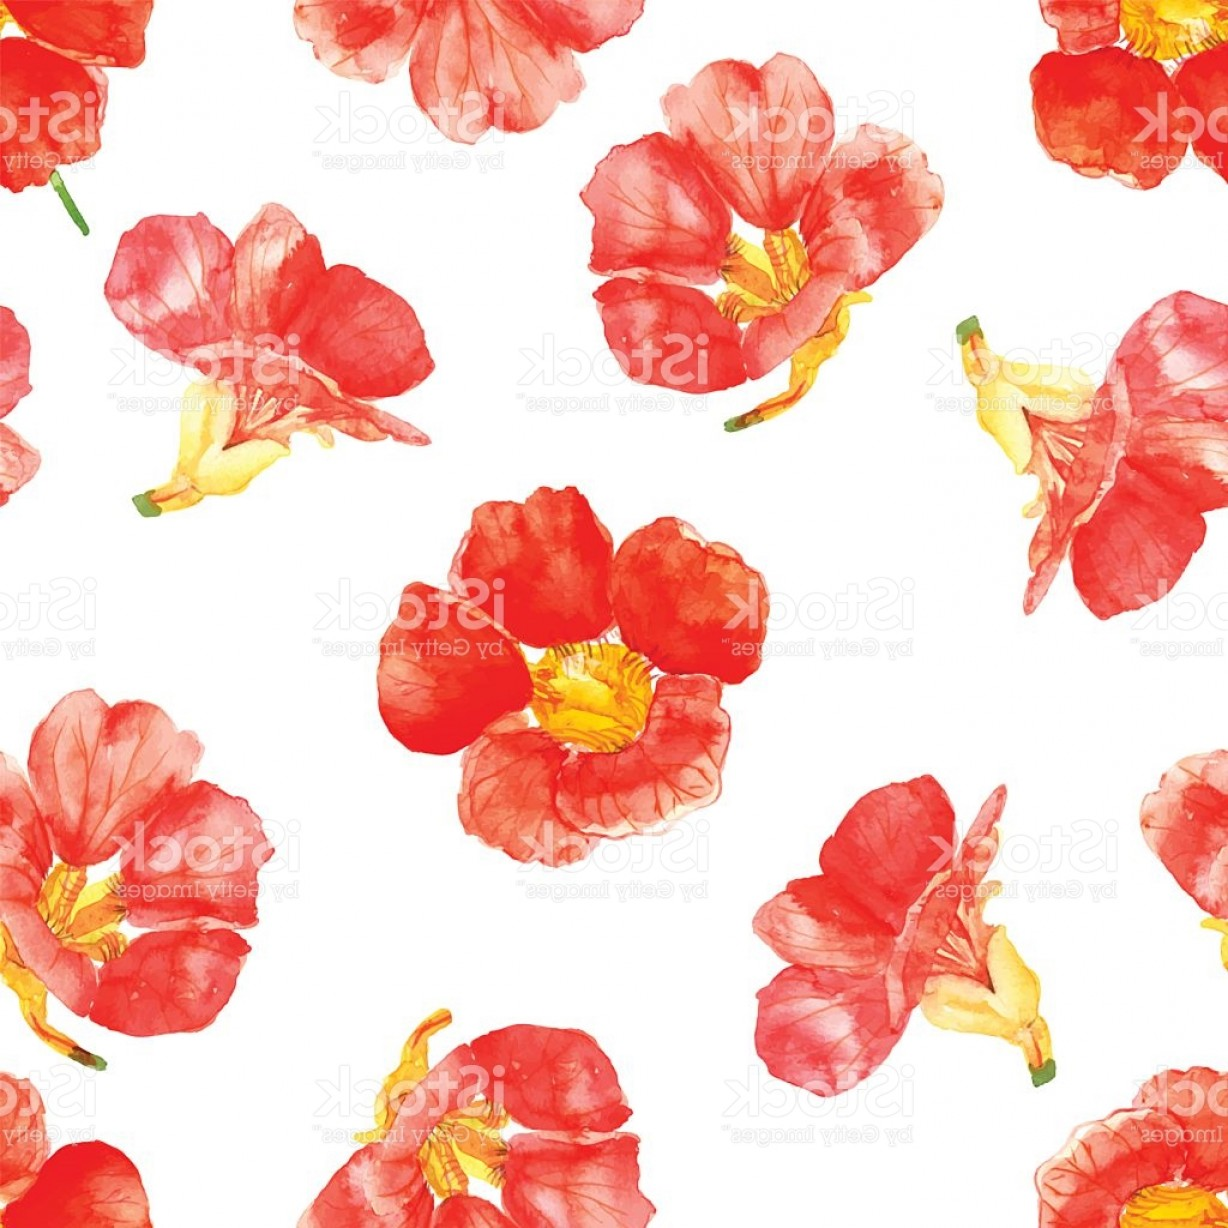 Open Source Vector Graphic Flower: Seamless Pattern With Red Flowers Drawn Watercolor Gm